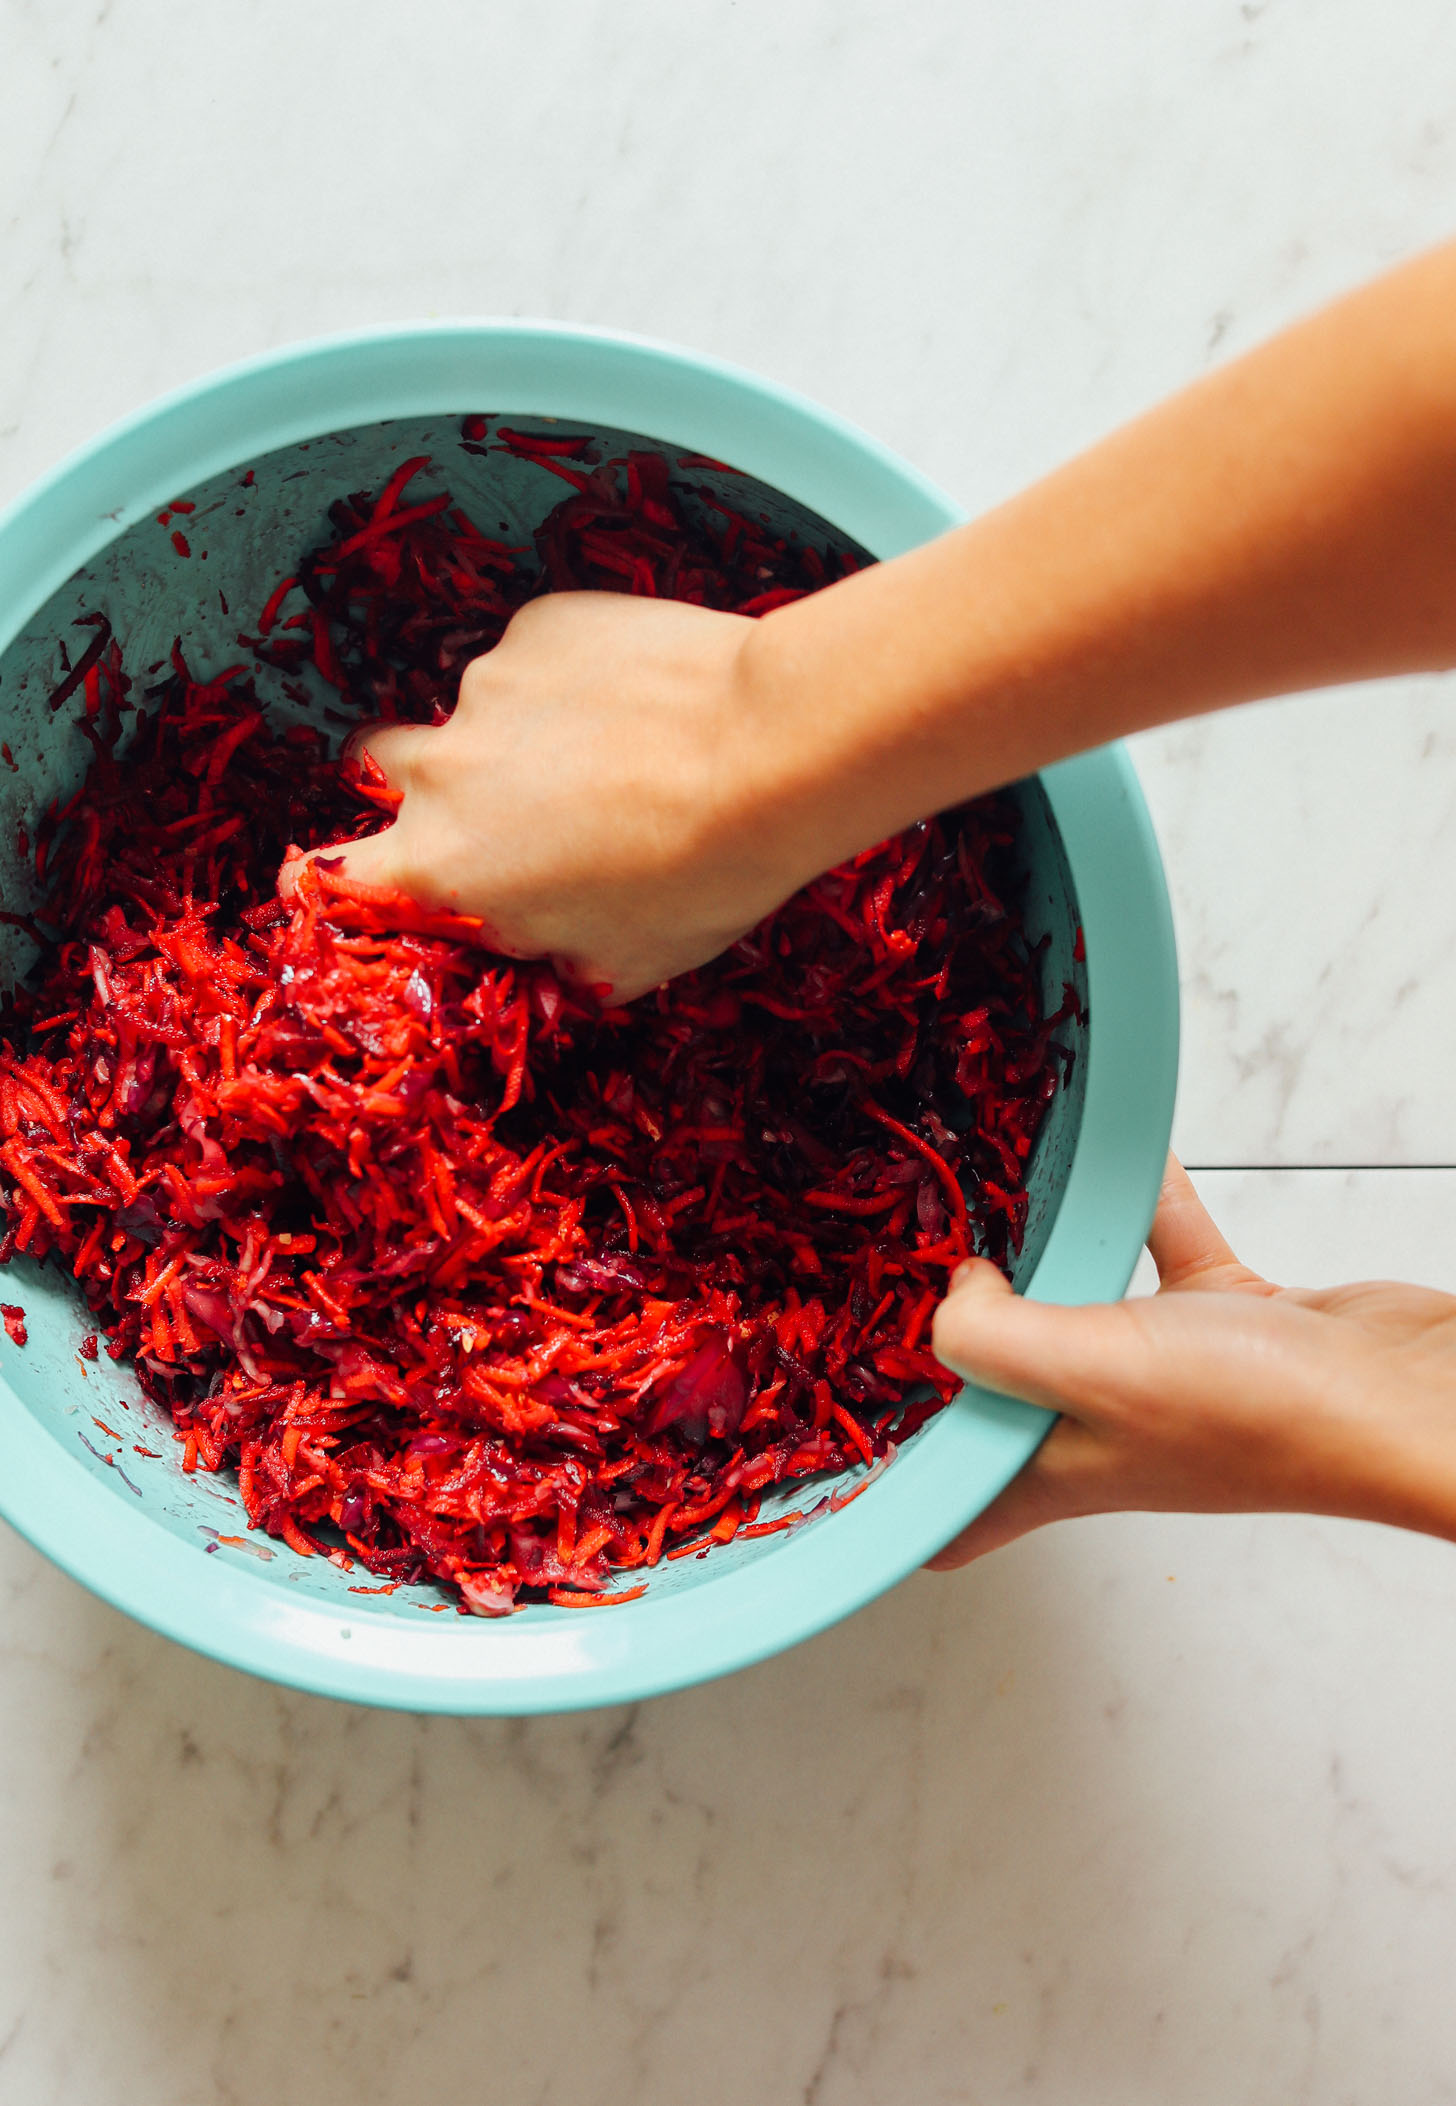 Massaging beets, carrots, and cabbage for our tutorial on How to Make Sauerkraut